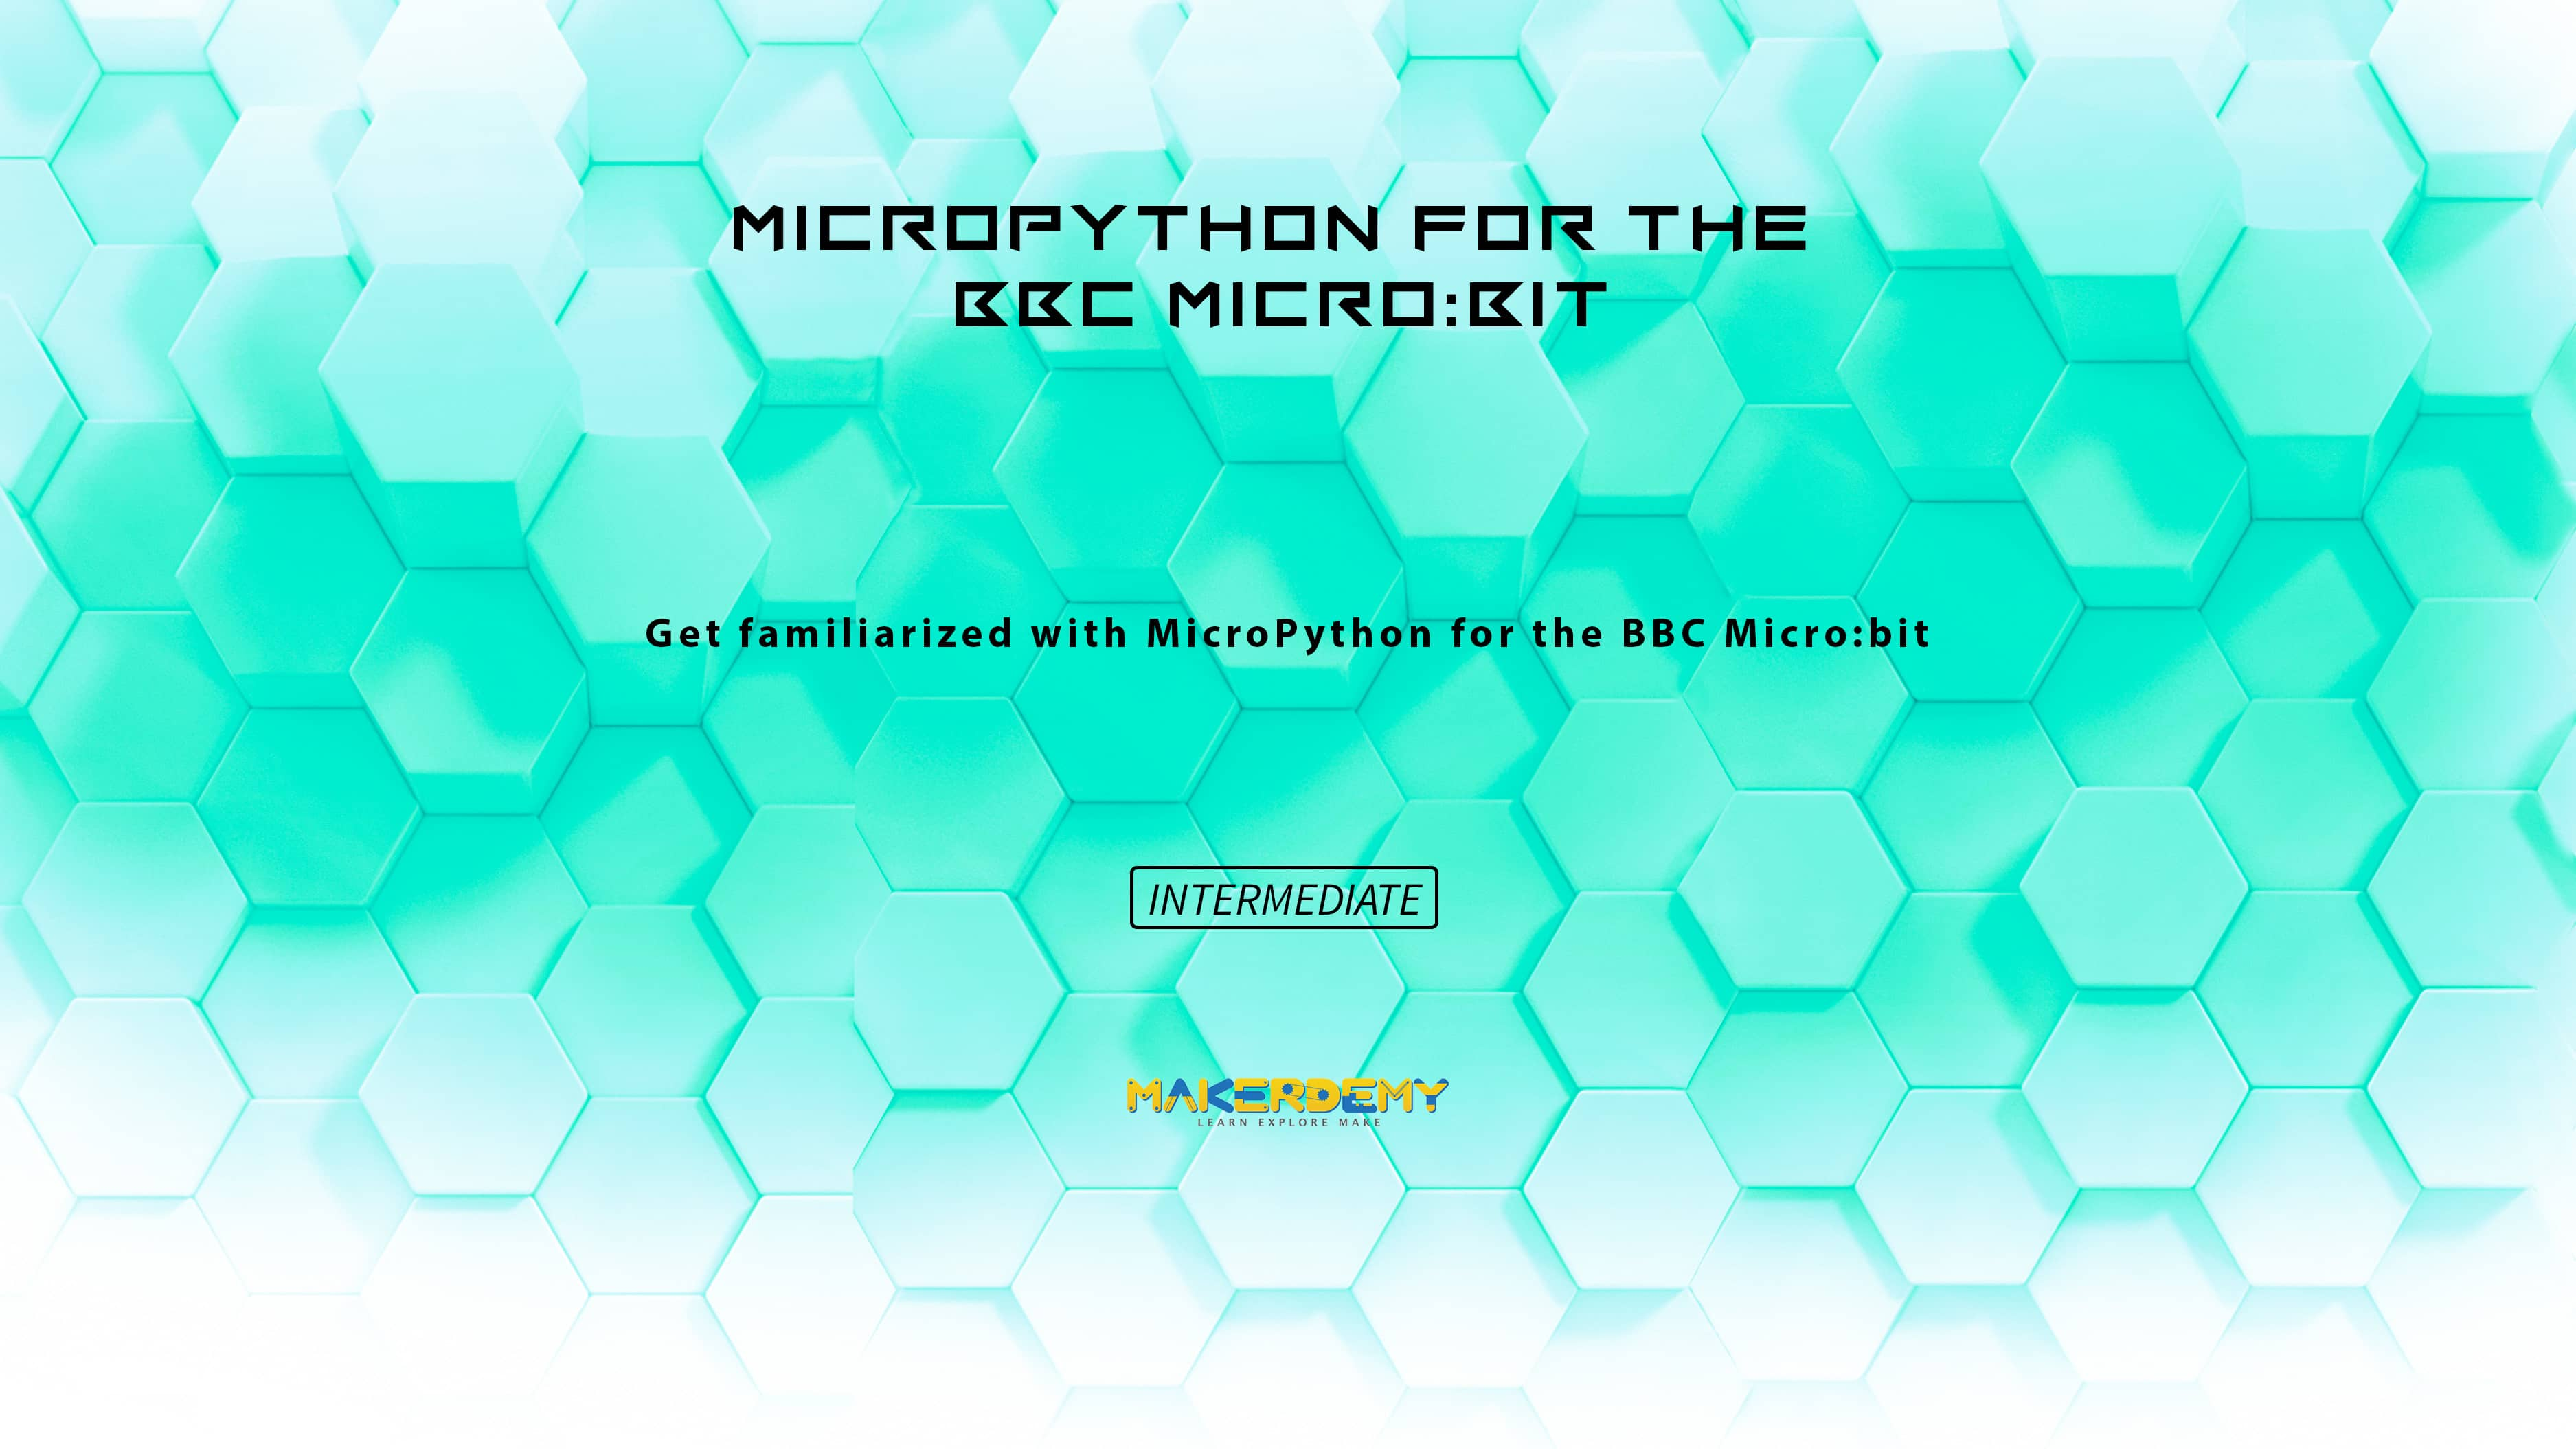 MicroPython for the BBC Micro:bit